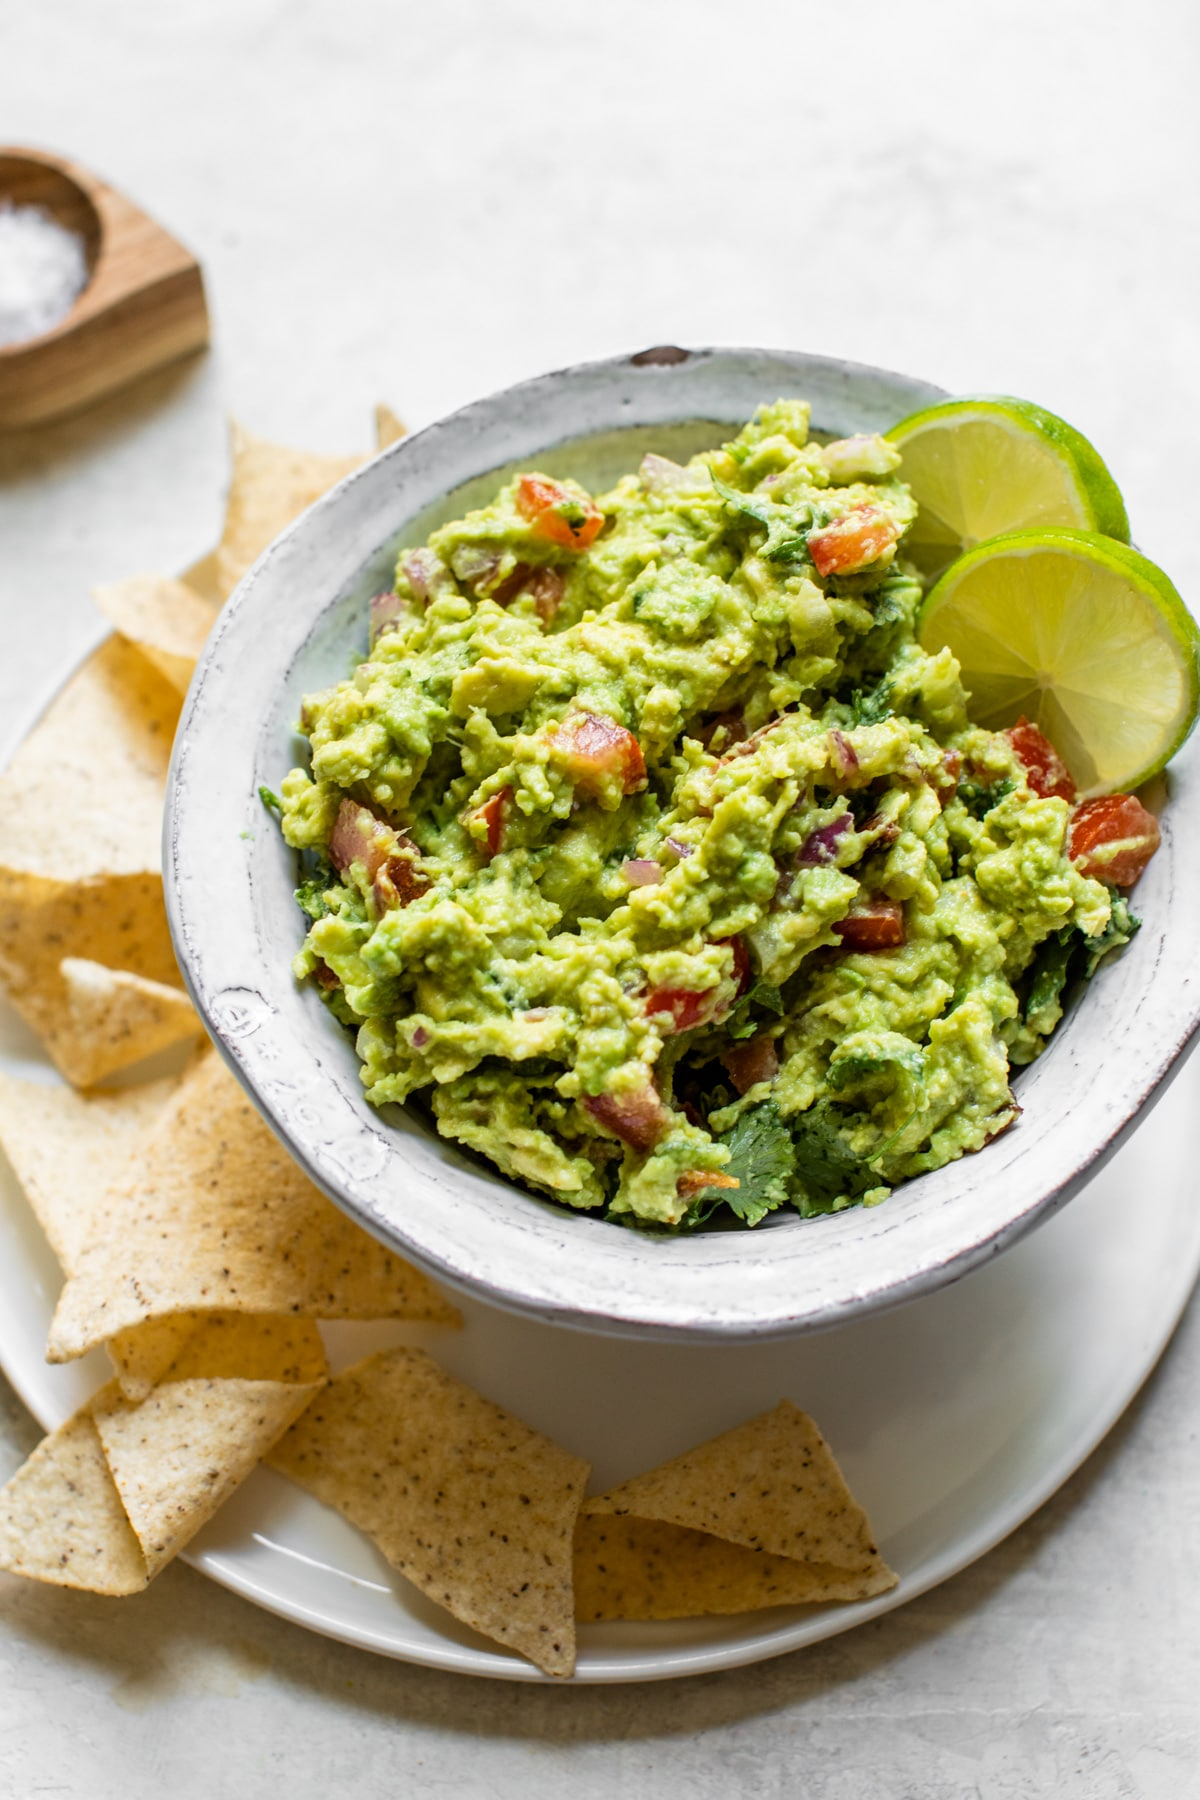 guacamole in a bowl with tortilla chips around it